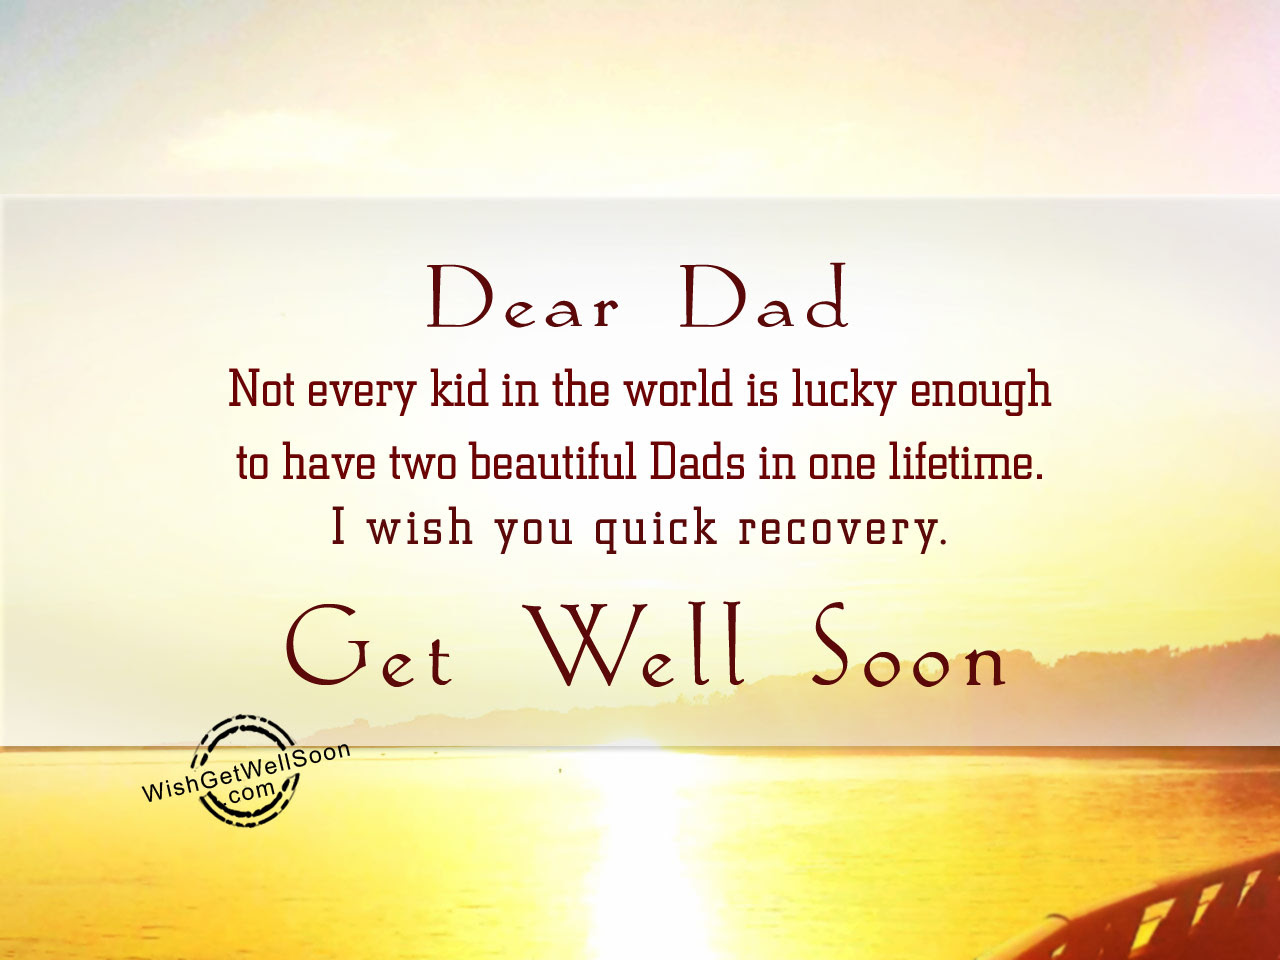 Get Well Soon Wishes For Step Father Pictures Images